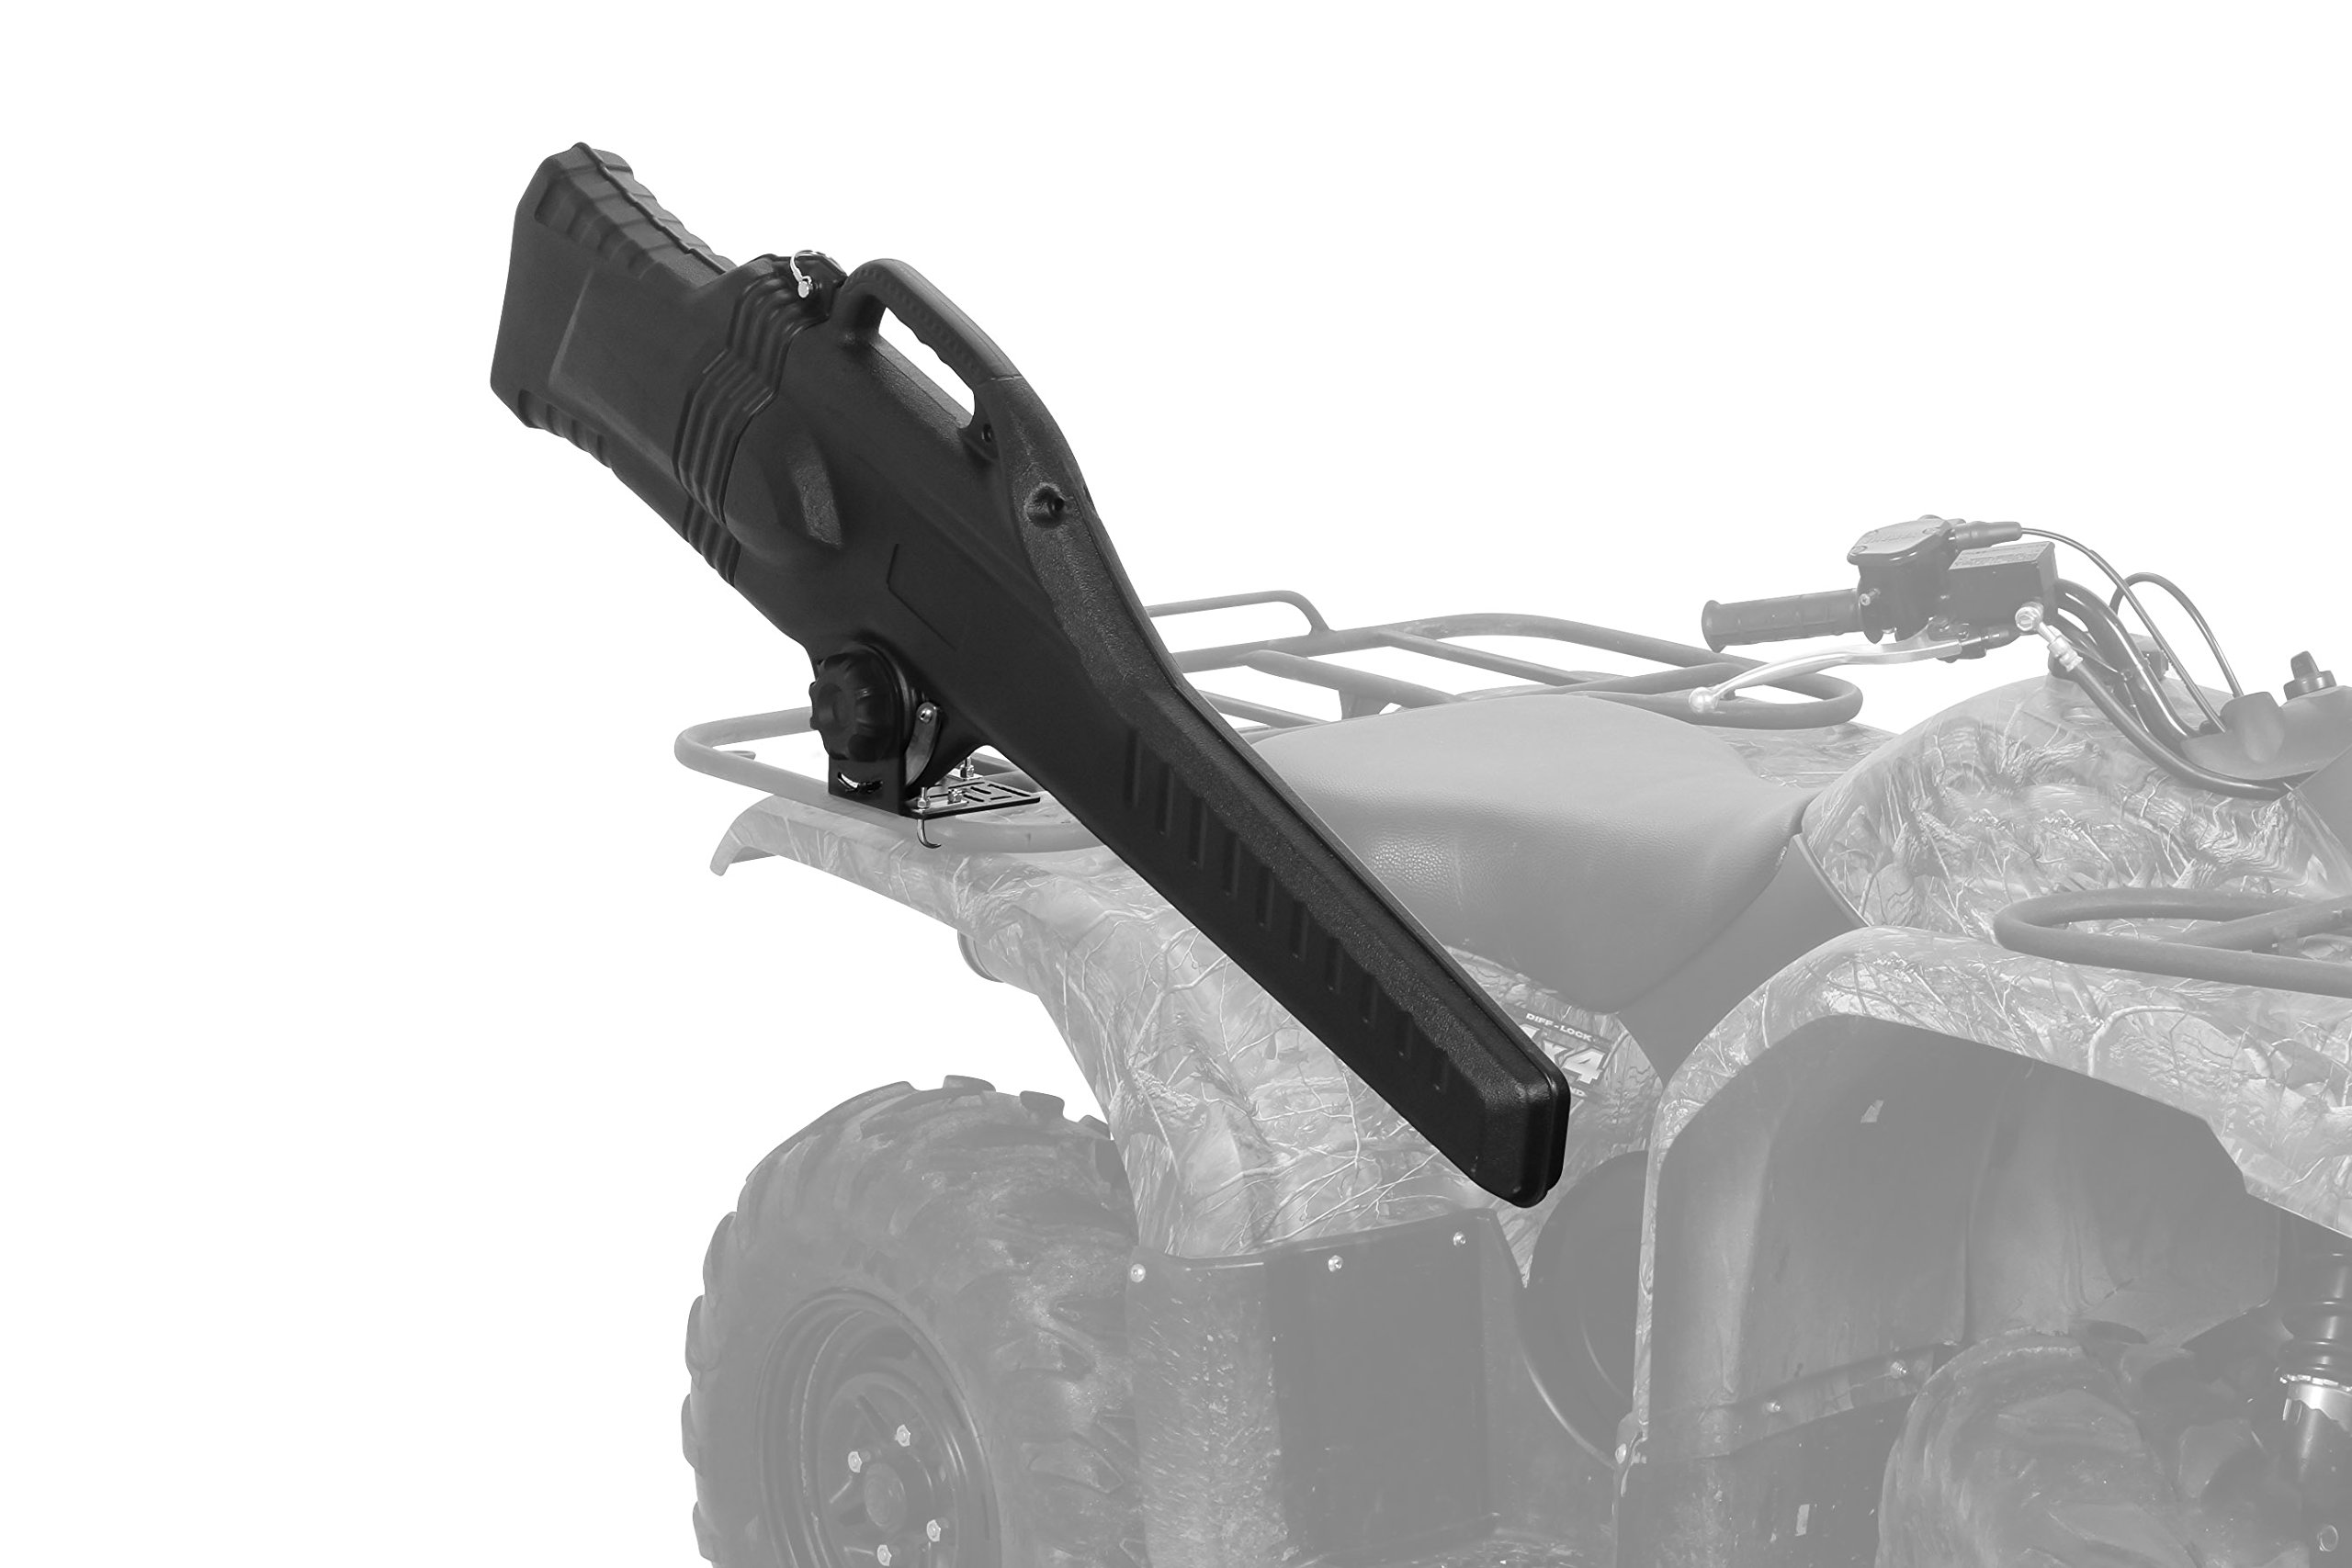 Black Boar ATV Gun Holder Case with Integrated Carry-Handle and Affixed Soft-Sided Inner Liner, Stores and Protects Most Rifles, Mounting Hardware Included (66012)